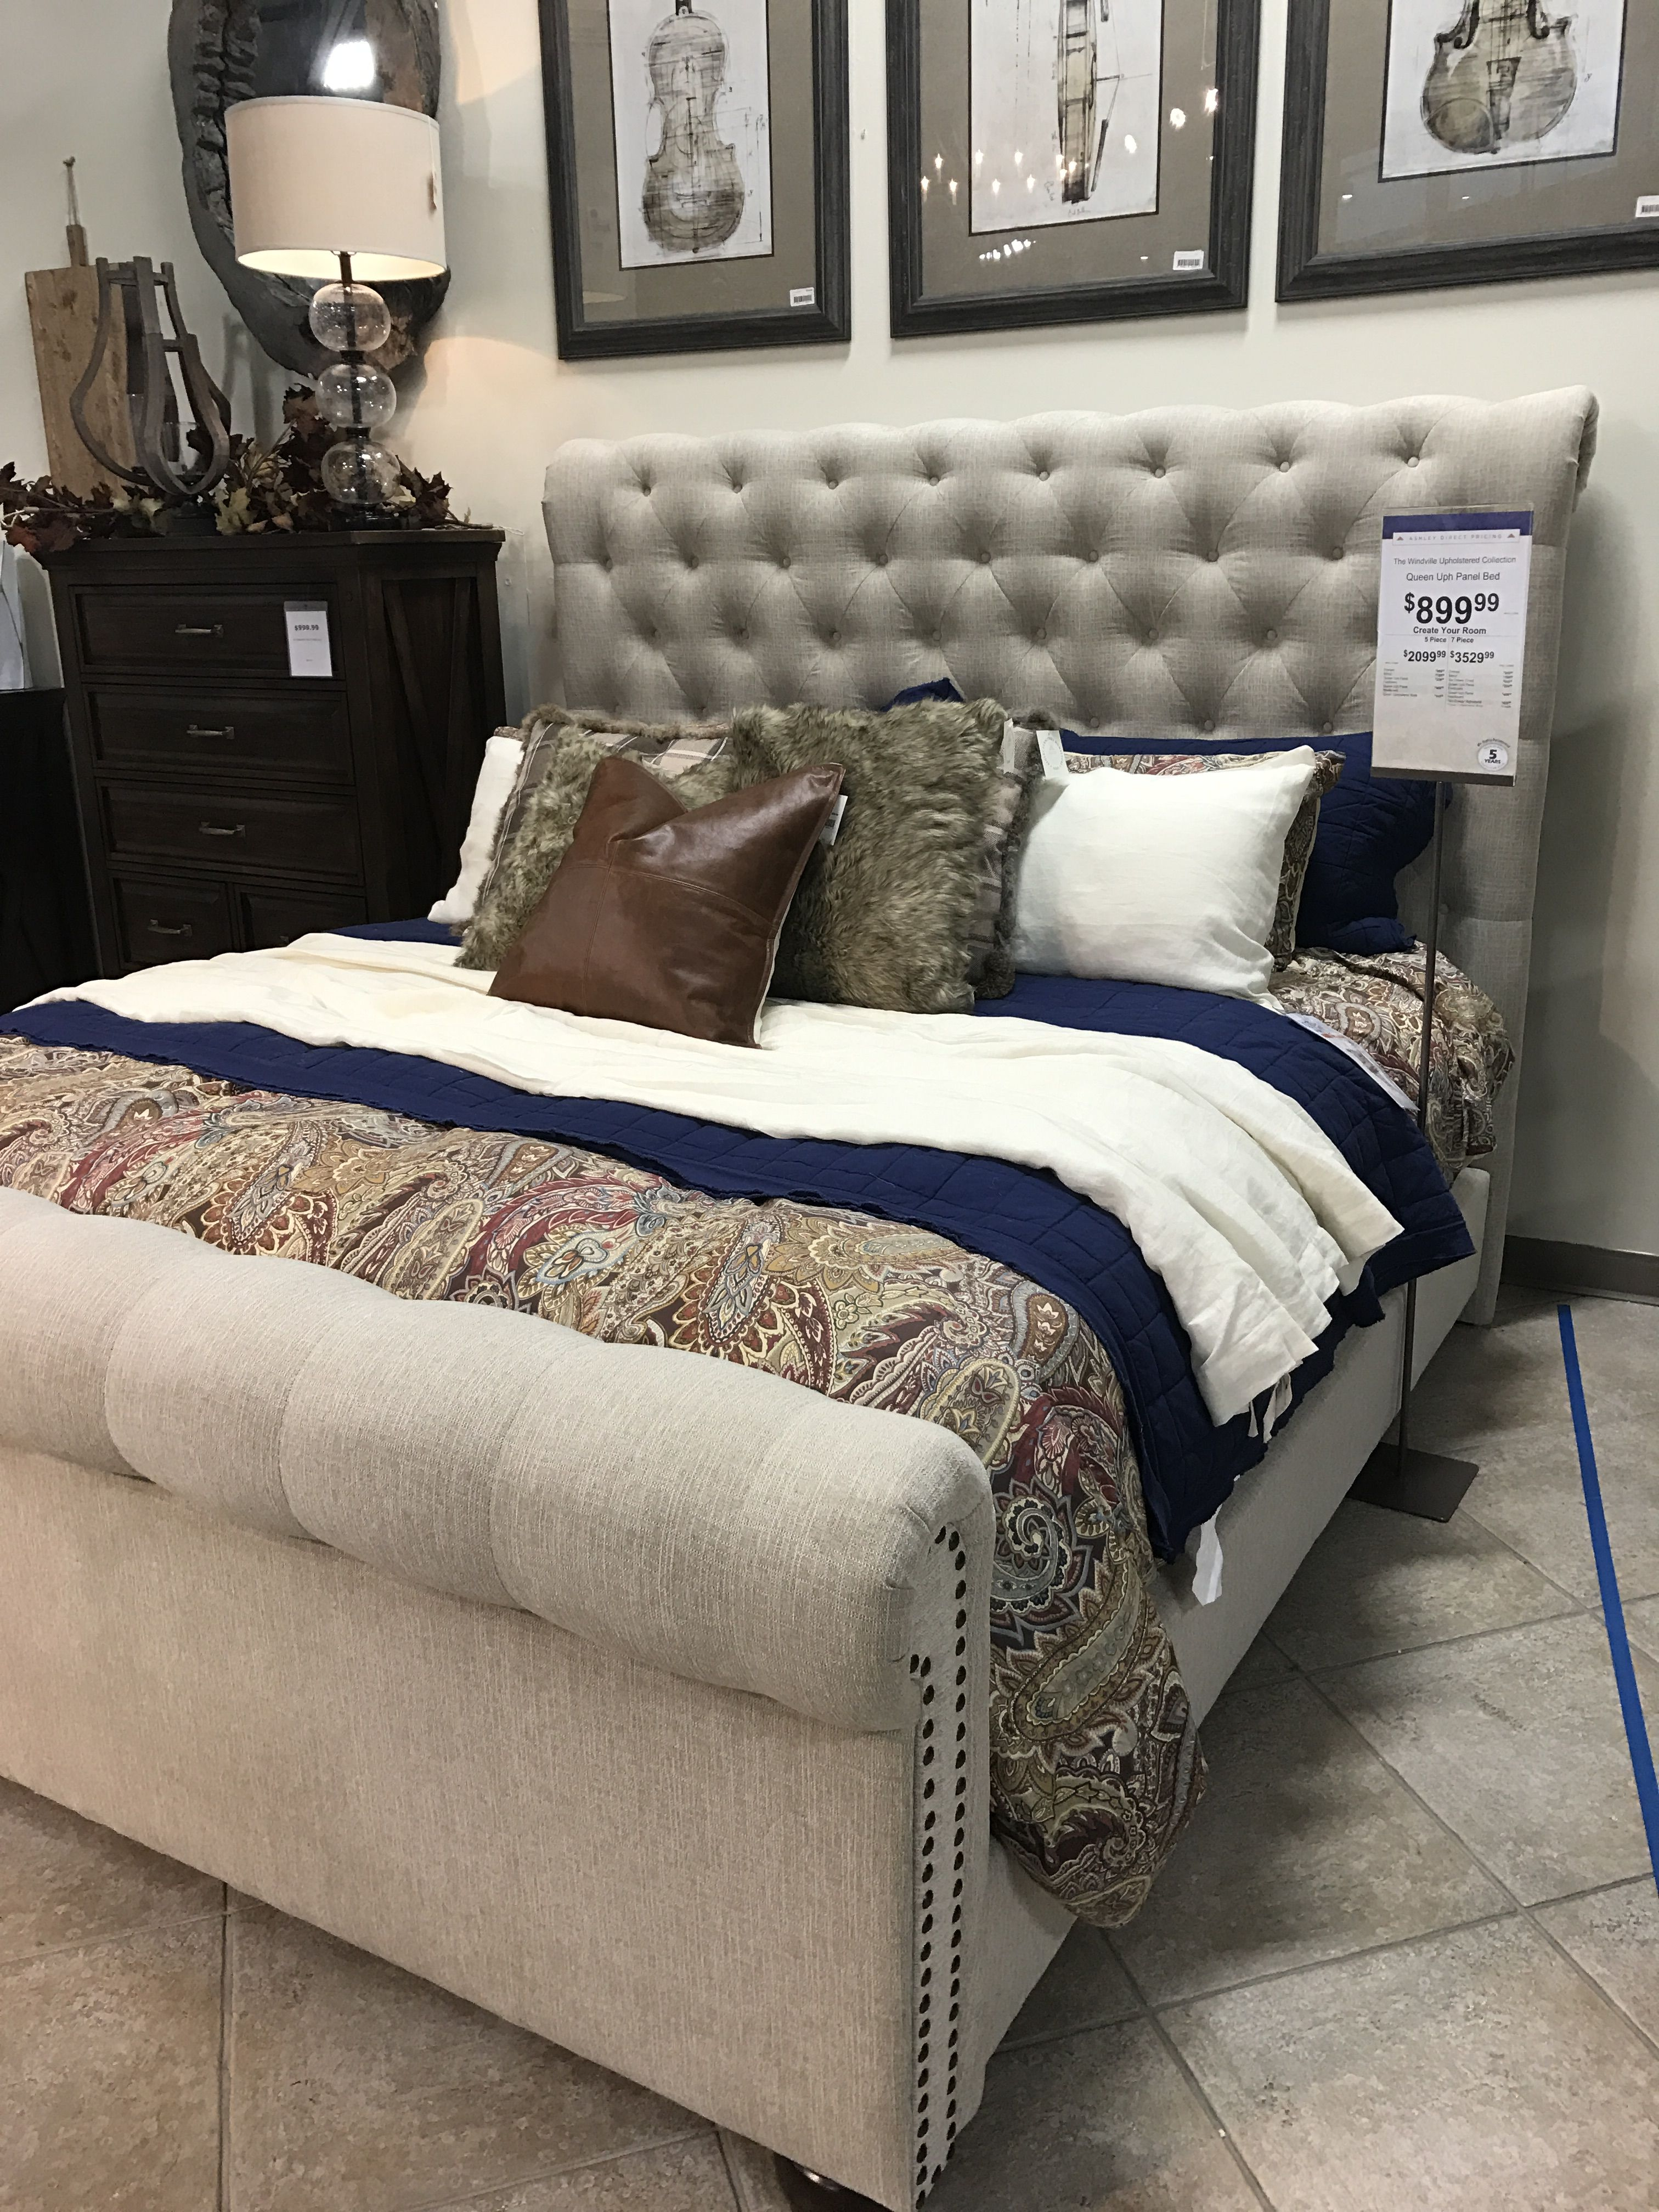 Will be ting this bed Ashley furniture windville